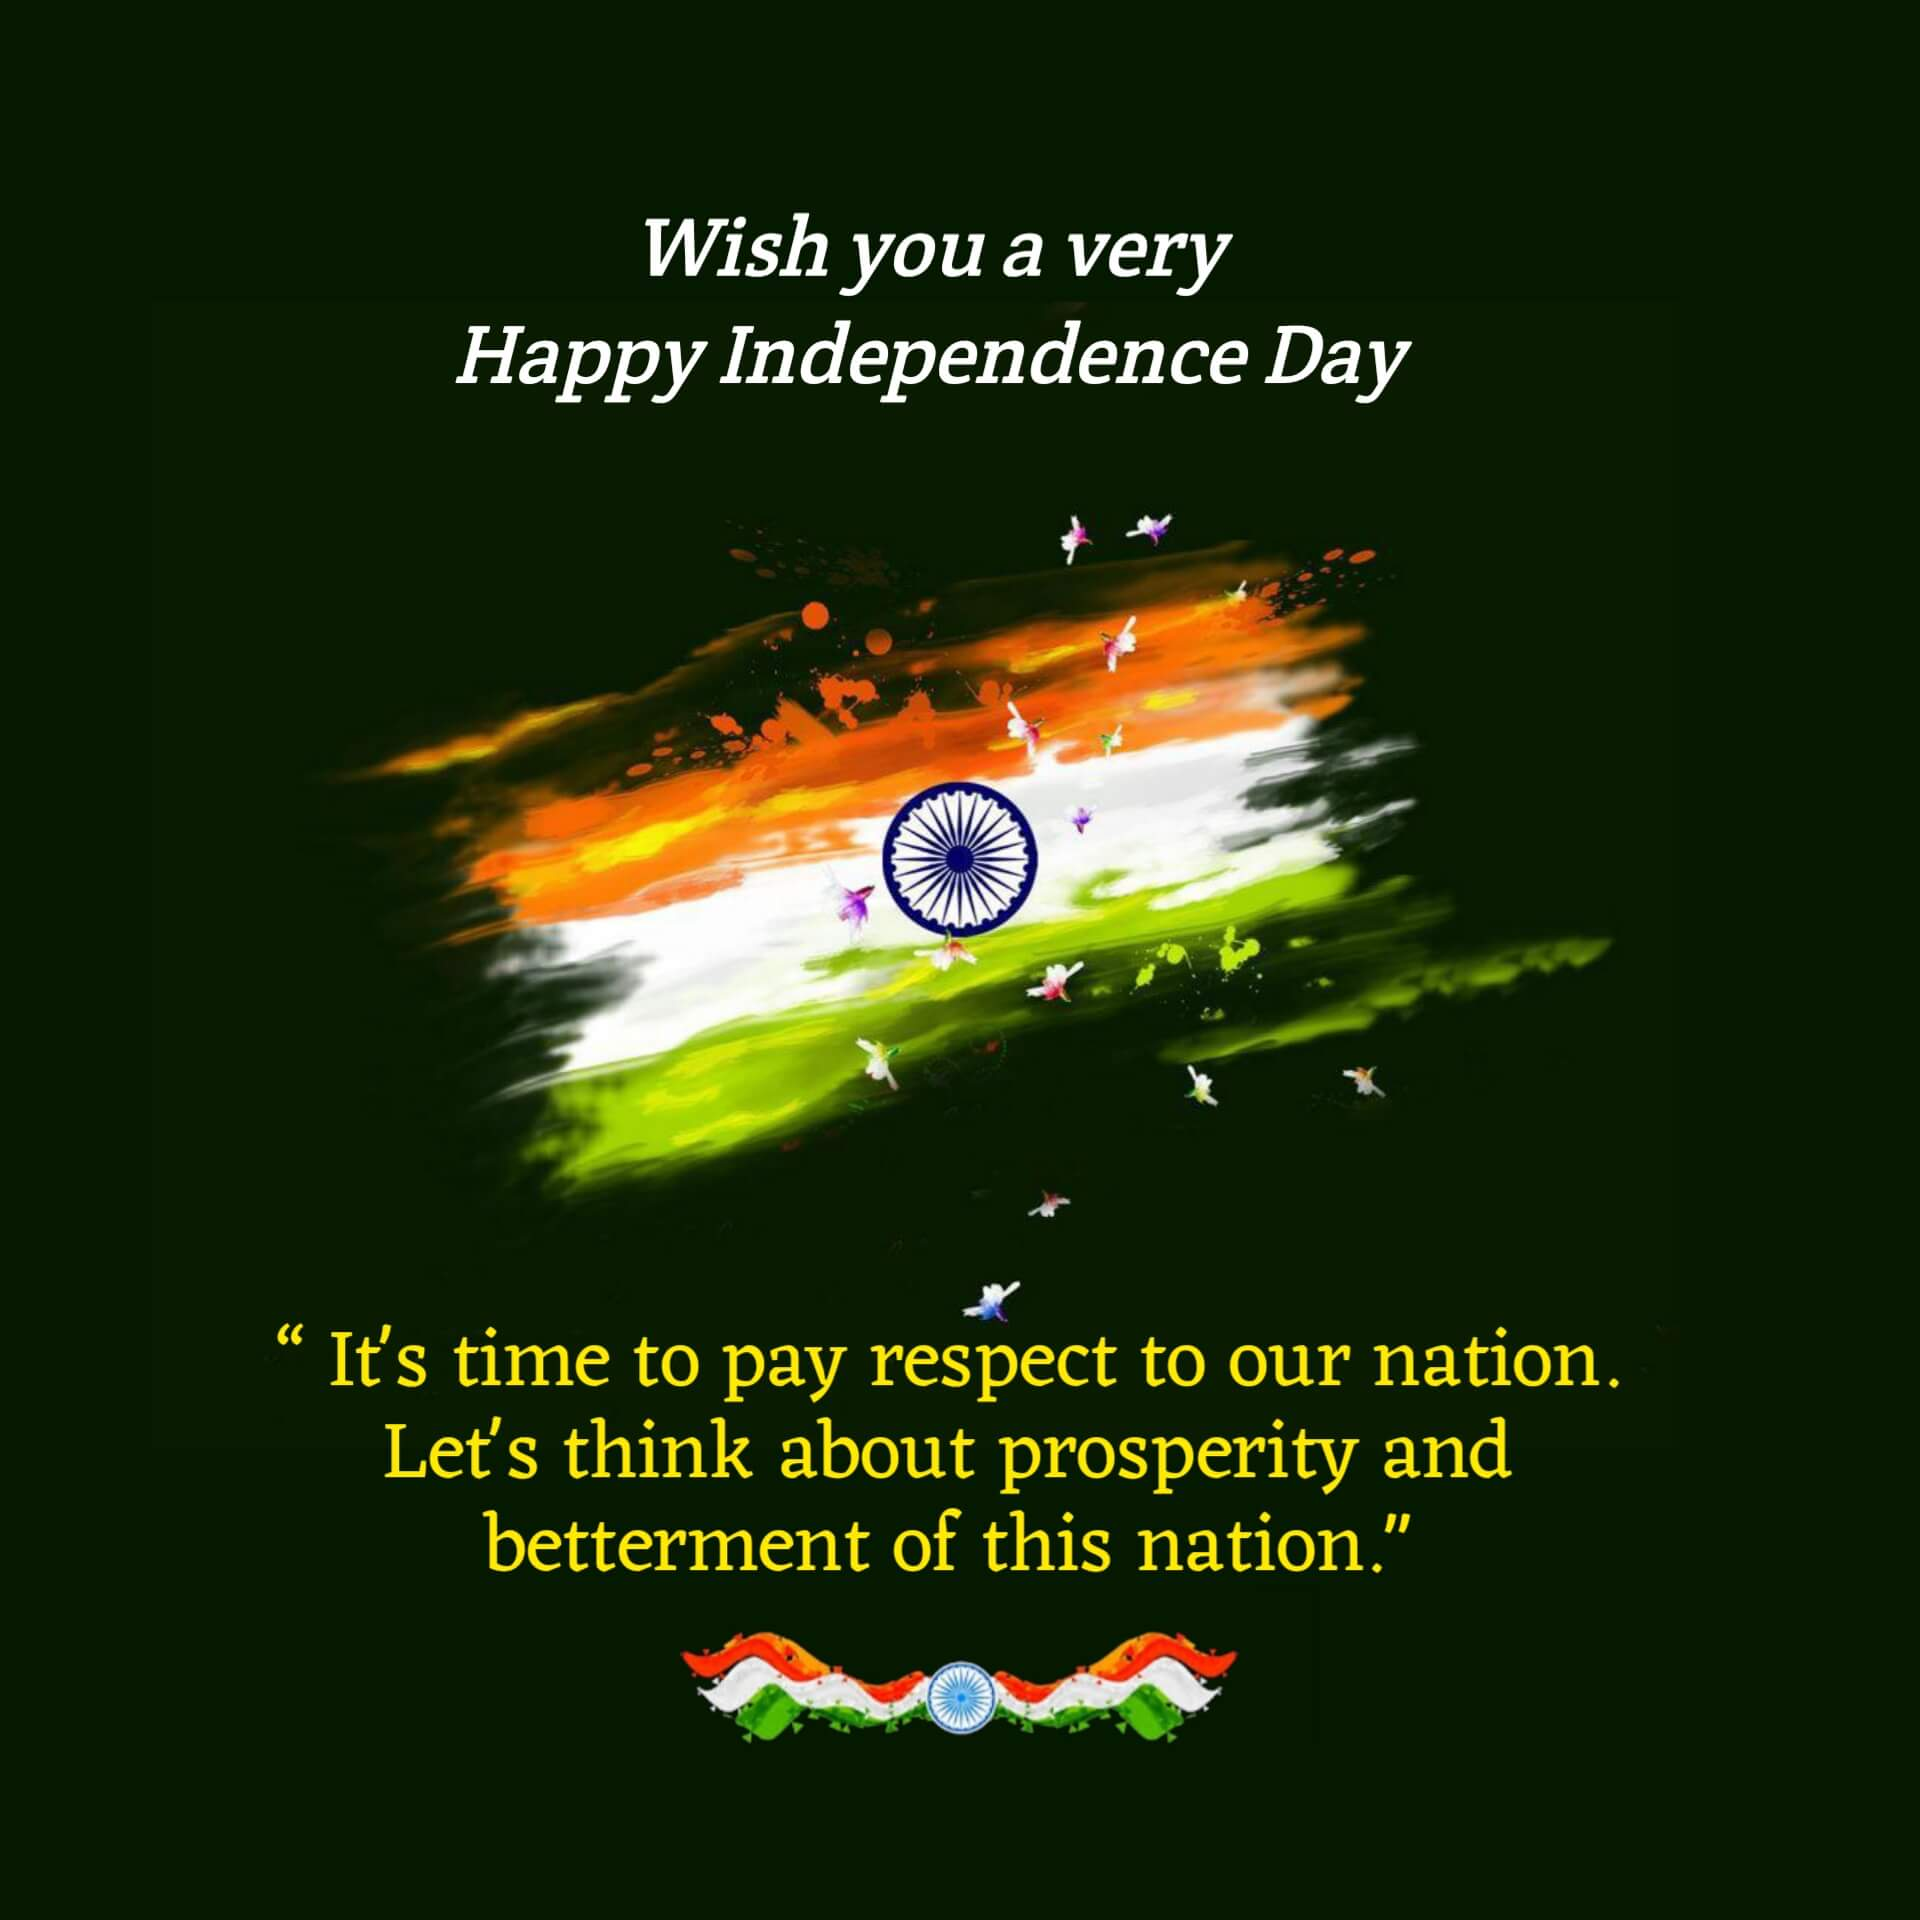 India Independence Day Wishes Image